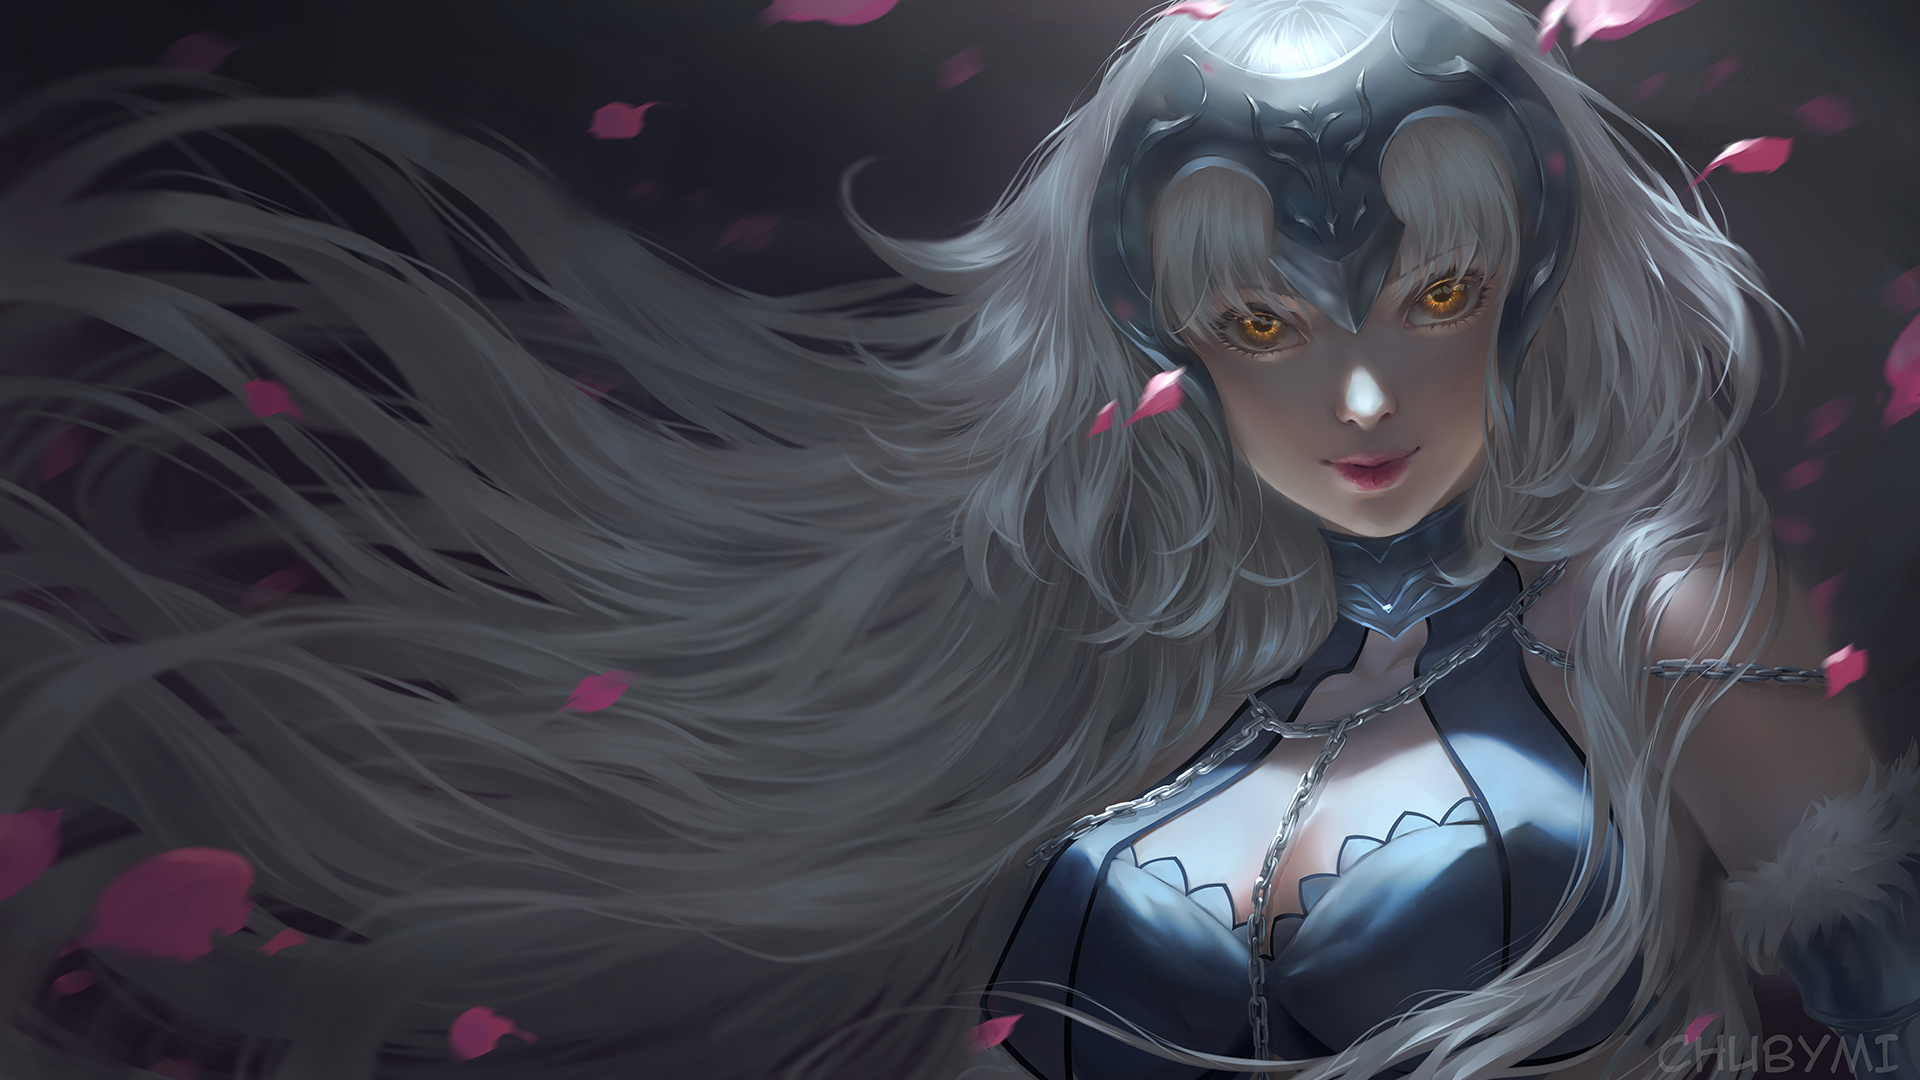 Fate Grand Order Jeanne Darc Alter Hd Anime 4k Wallpapers Images Backgrounds Photos And Pictures